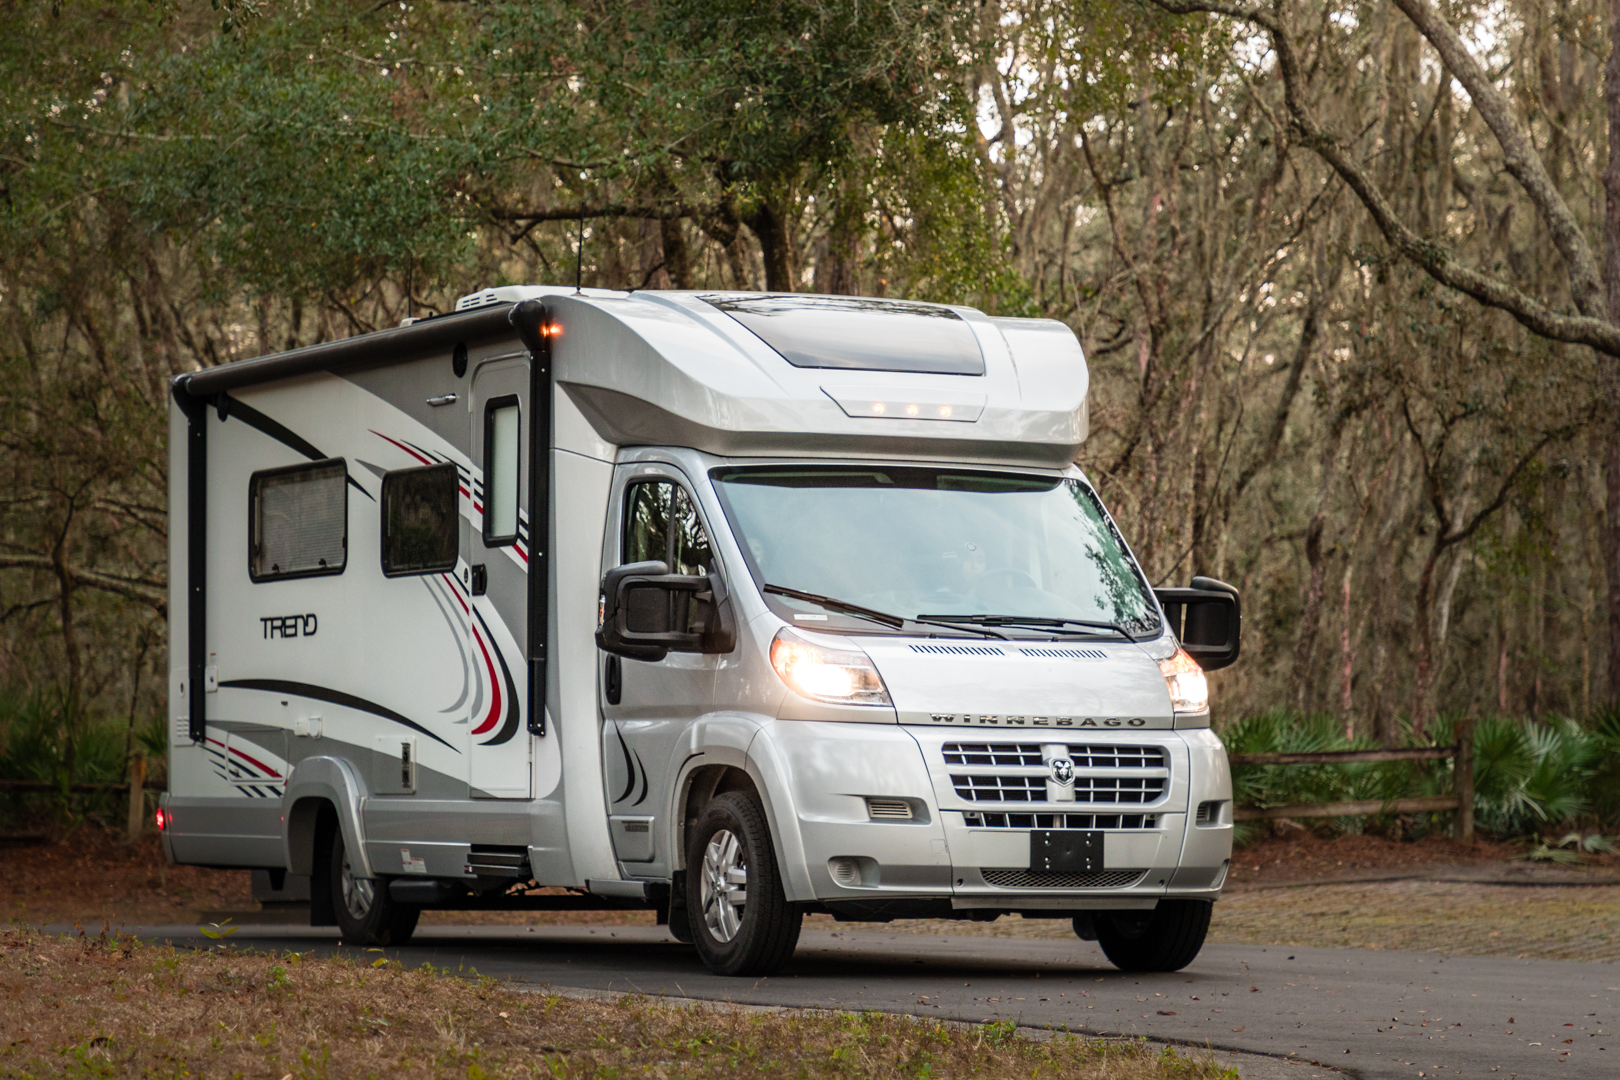 Here is an example of a class C RV, our Winnebago Trend!